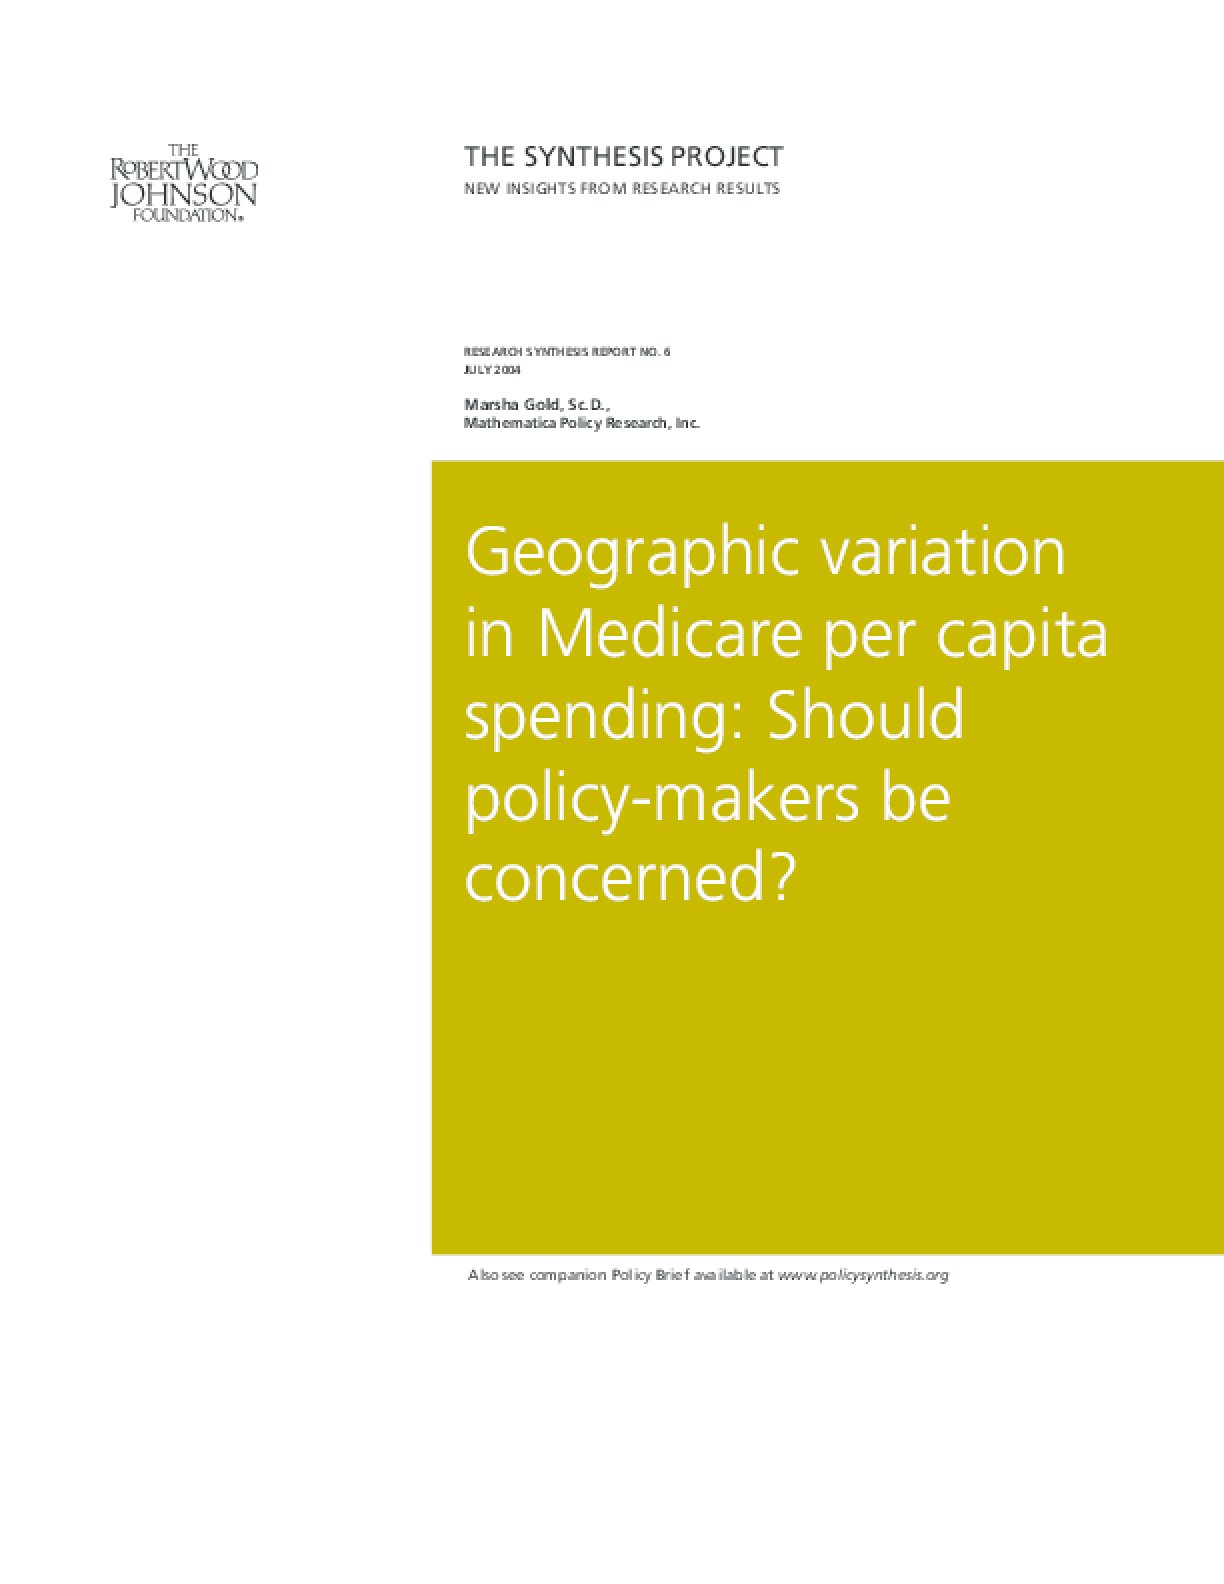 Geographic Variation in Medicare Per Capita Spending: Should Policy-Makers Be Concerned?